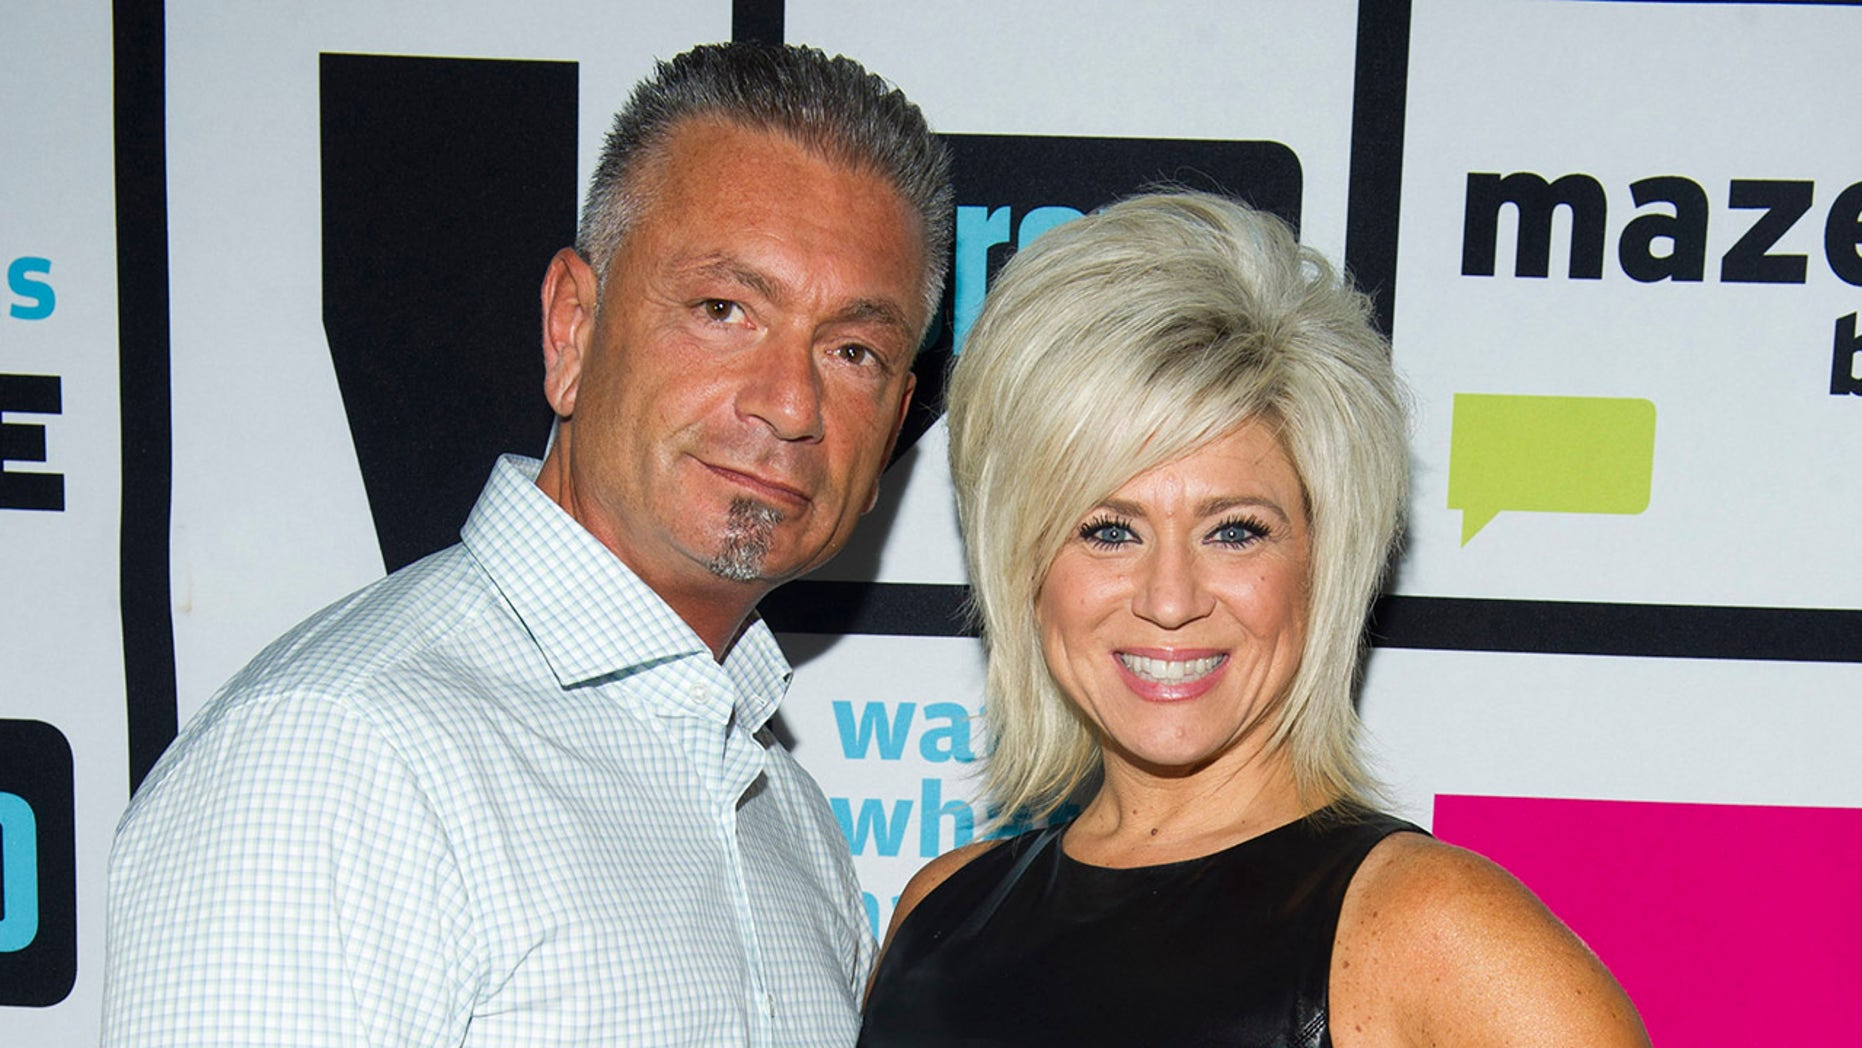 Theresa Caputo quietly filed for divorce from husband Larry Caputo in April.